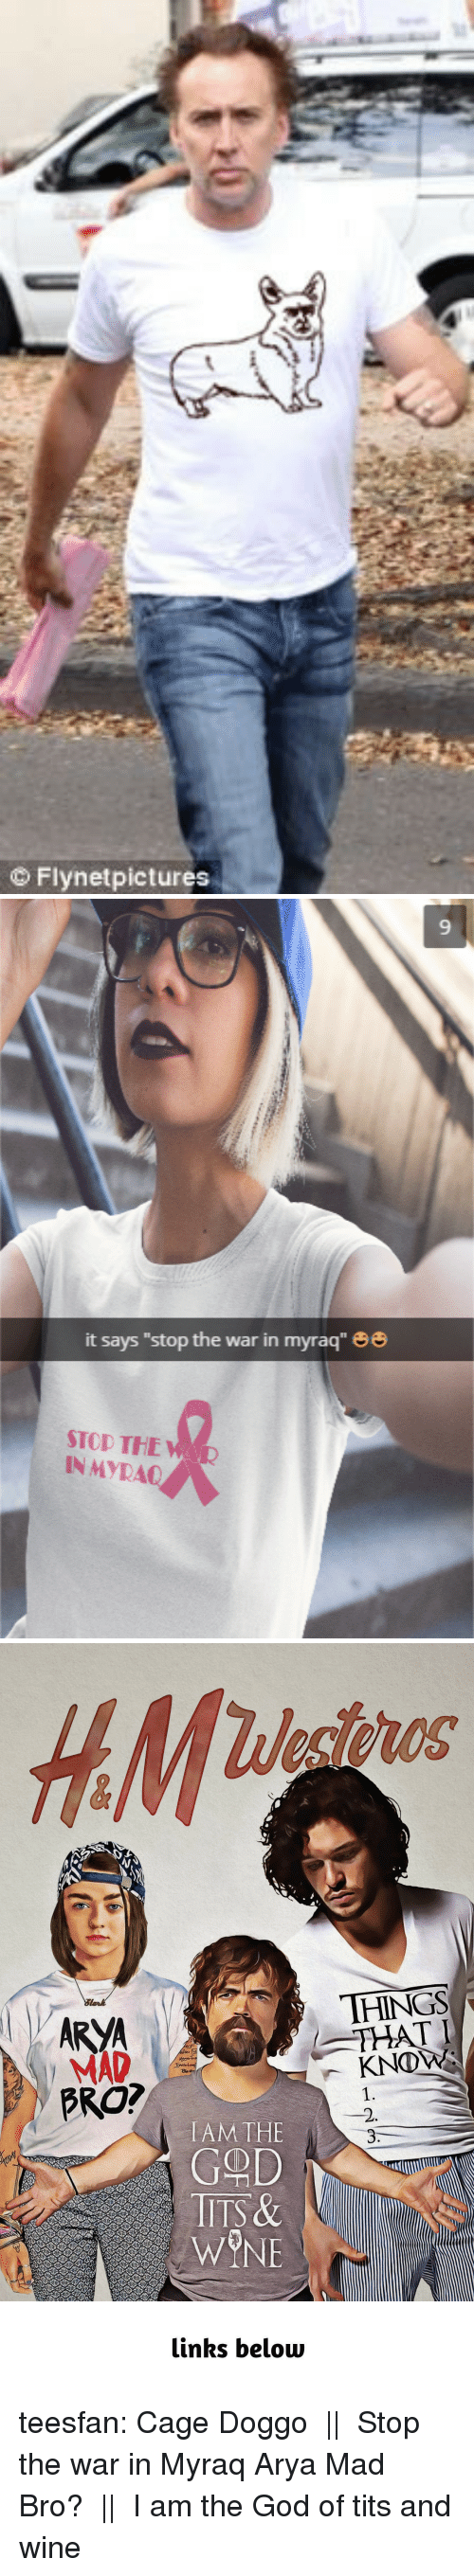 """God, Tits, and Tumblr: O Flynetpictures   it says """"stop the war in myraq""""  STOD THE  INMYRA   HINGS  MAD  BRO?  IAM THE  GOD  TITS&   inks below teesfan: Cage Doggo 